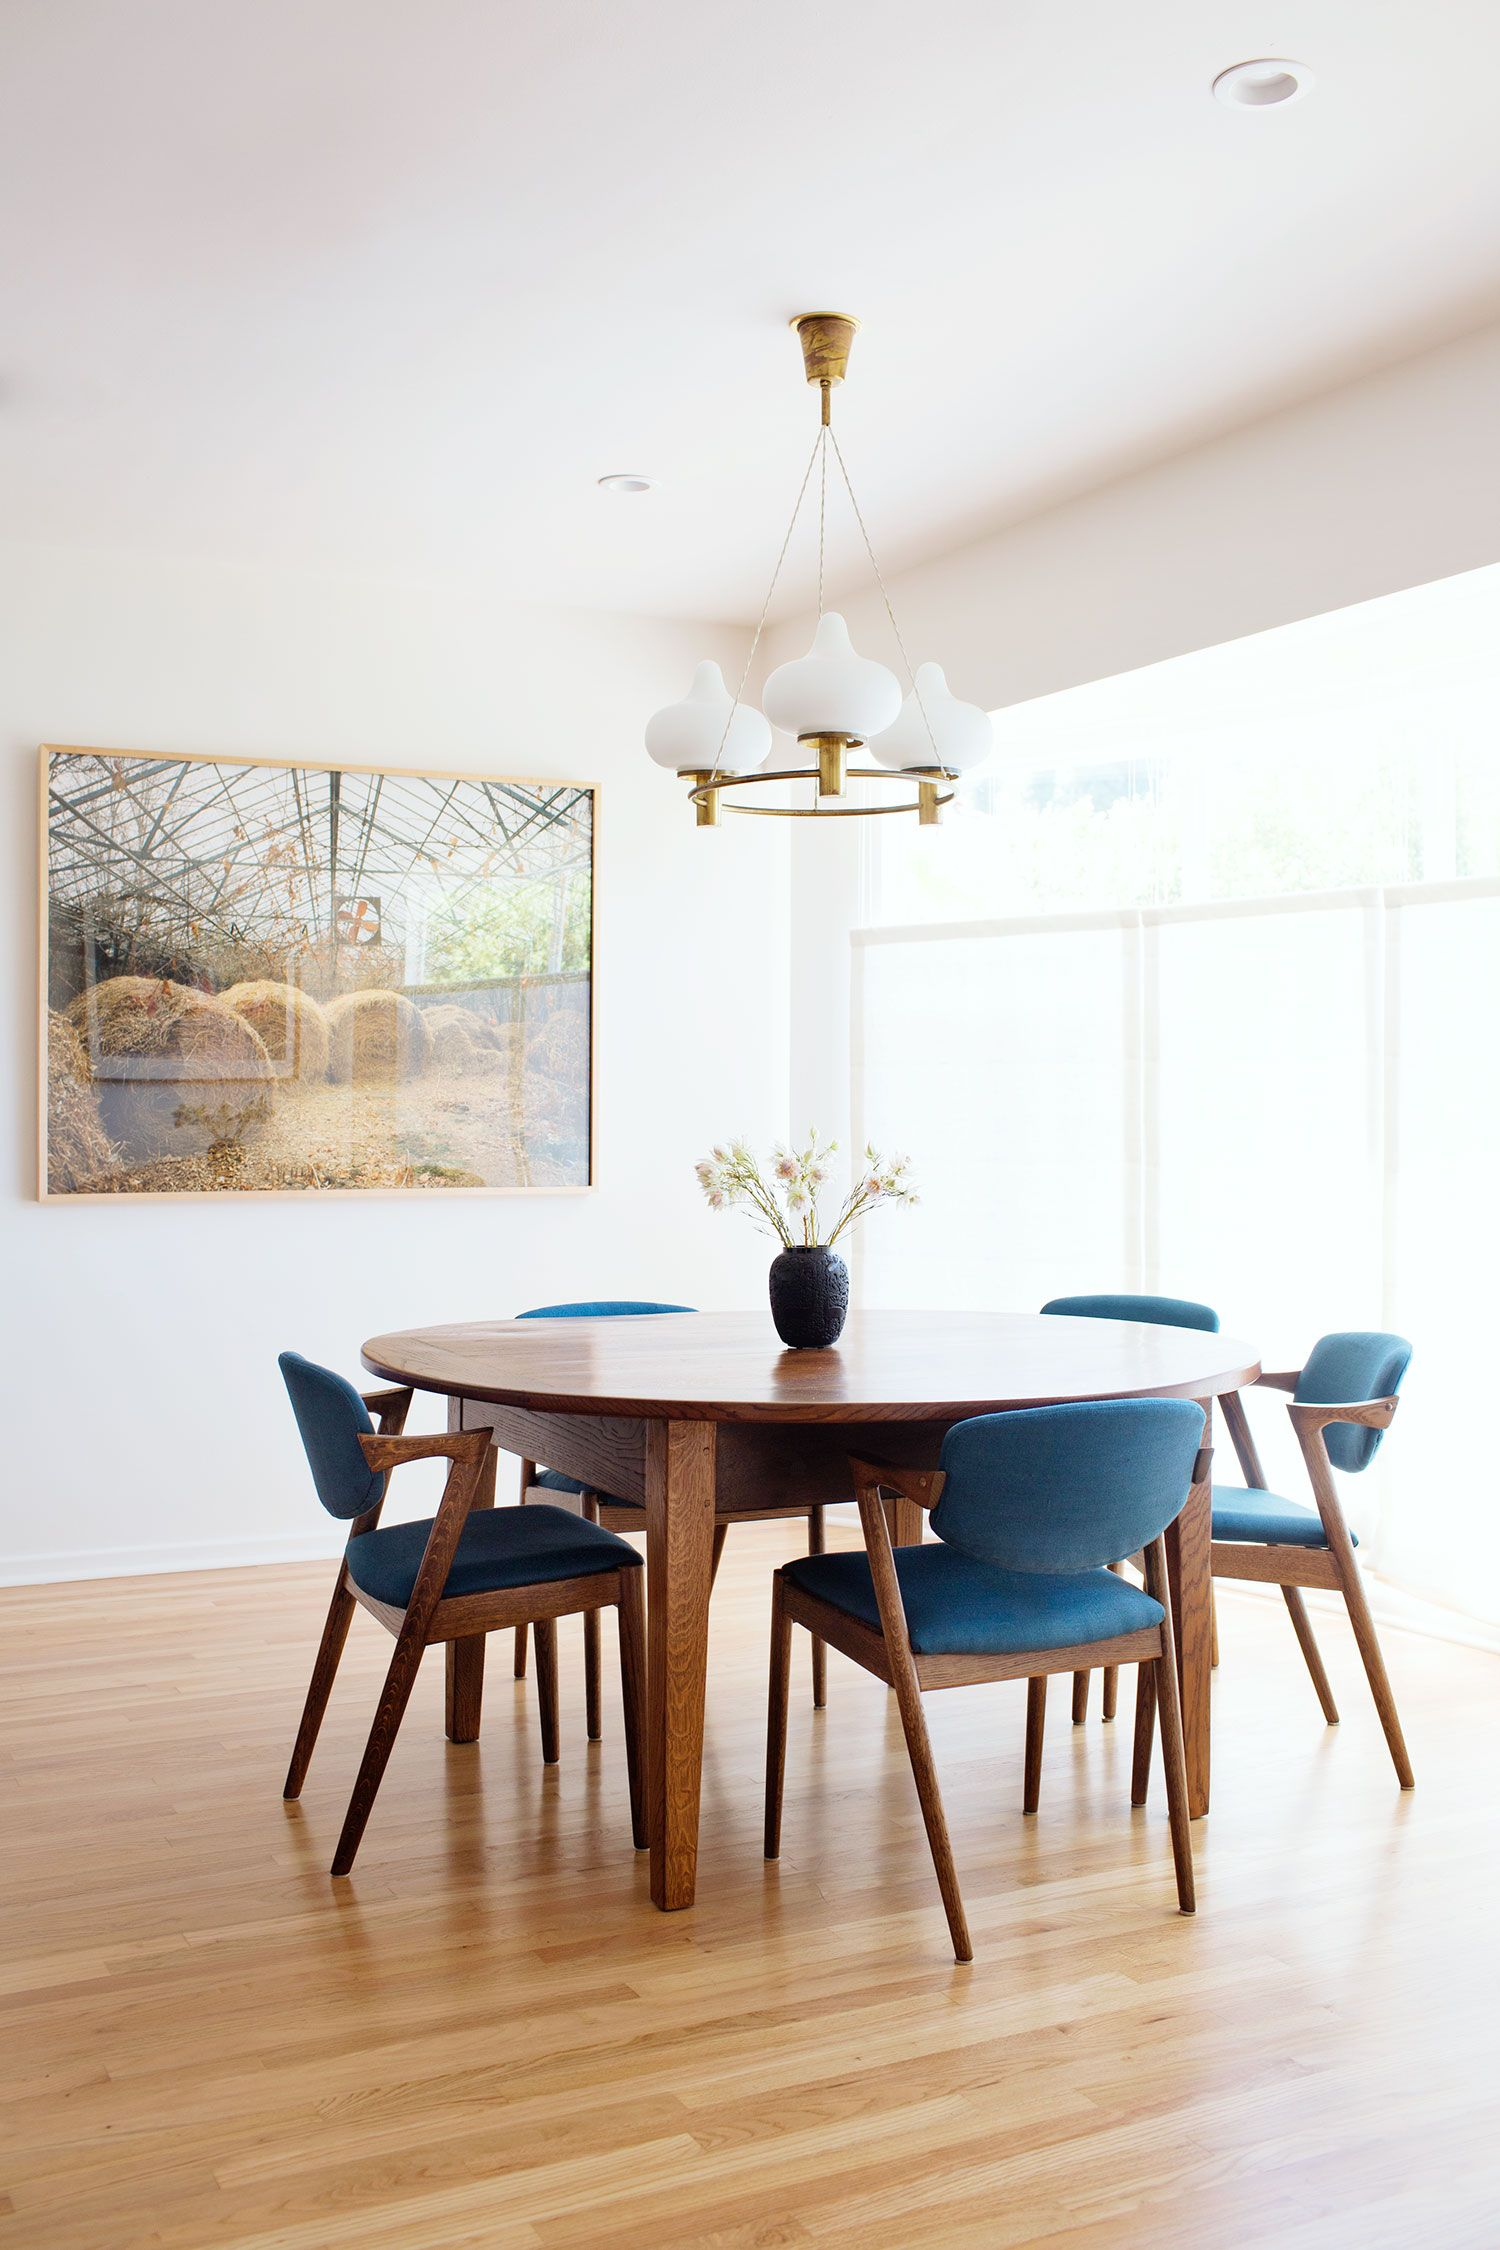 Minimalist mid century modern inspired dining room decor